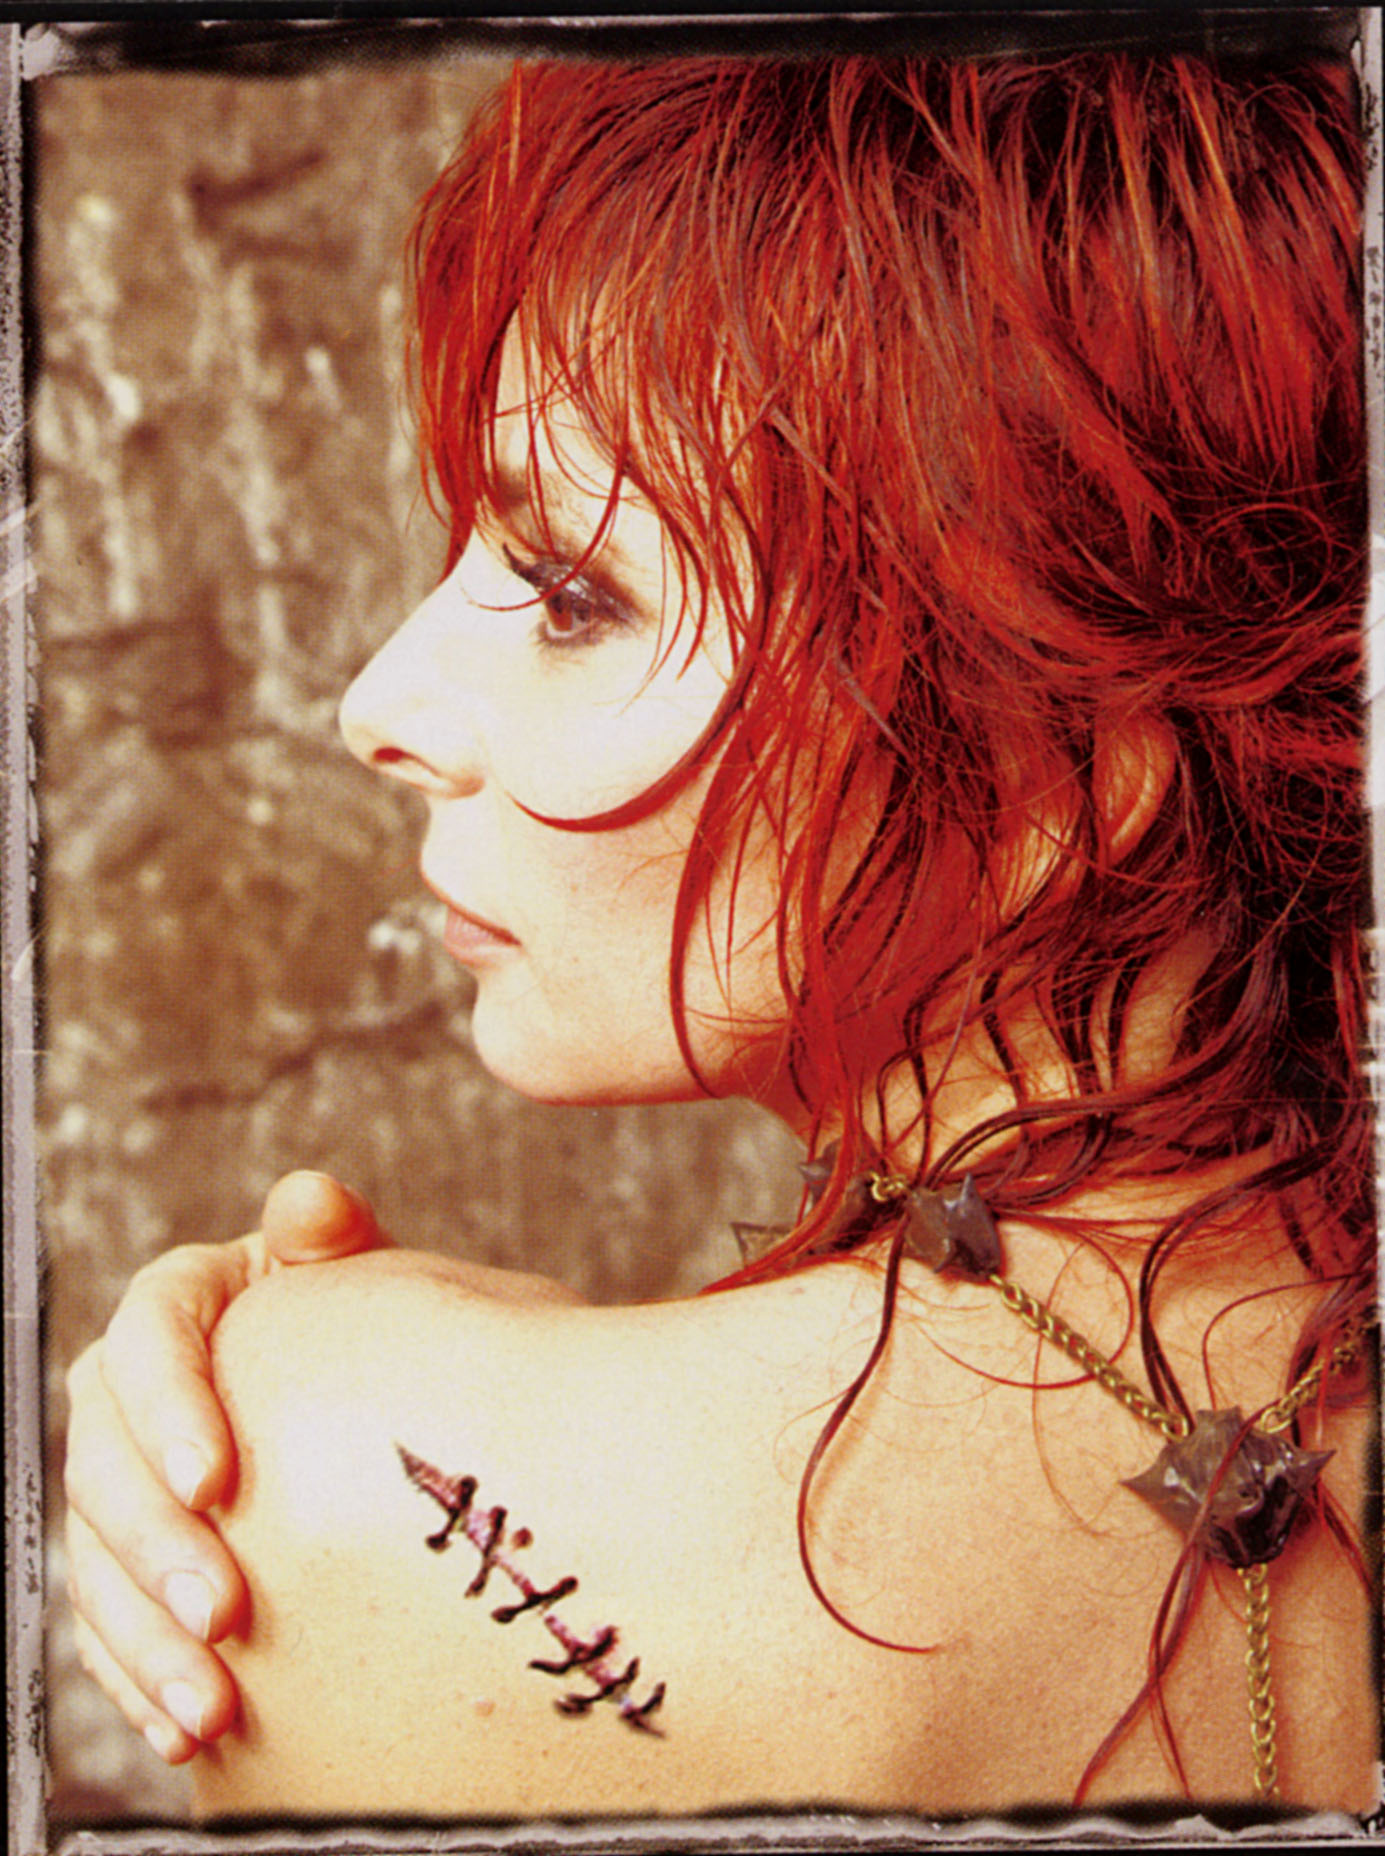 La promo de Point de Suture dans Mylène 2009 - 2010 mylene-farmer-livret-point-de-suture